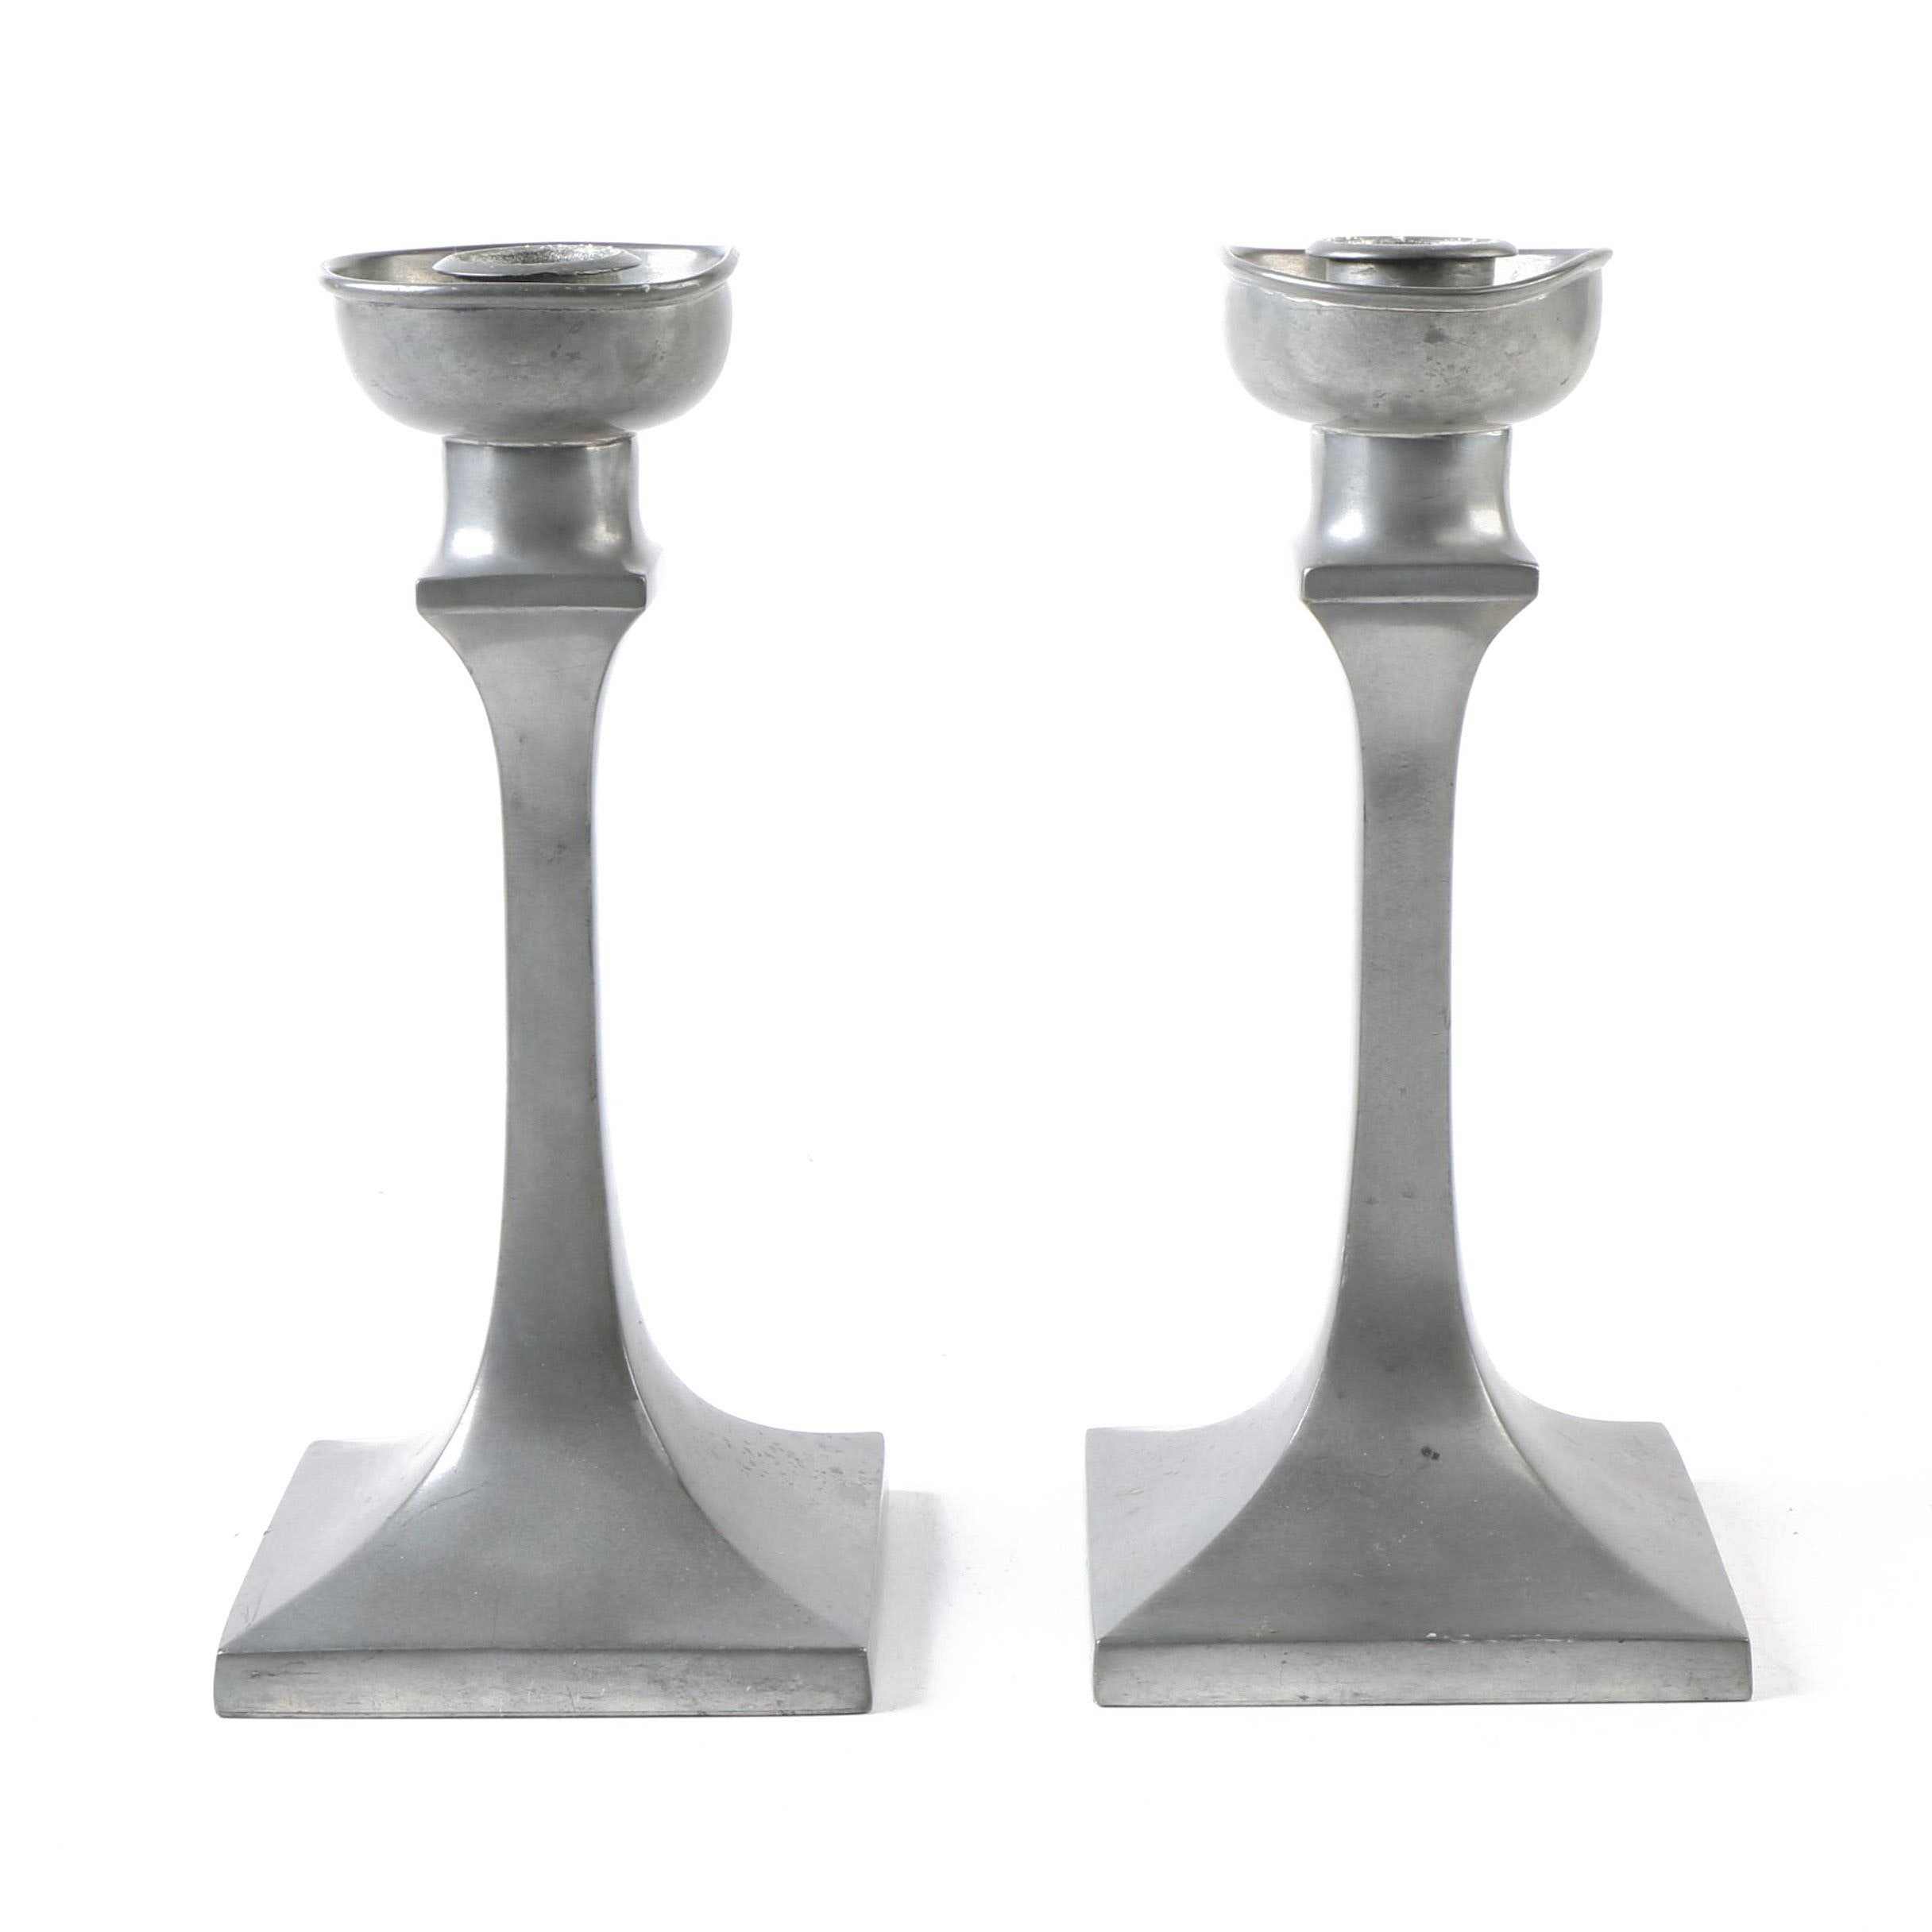 Insico Pewter Candle Holders